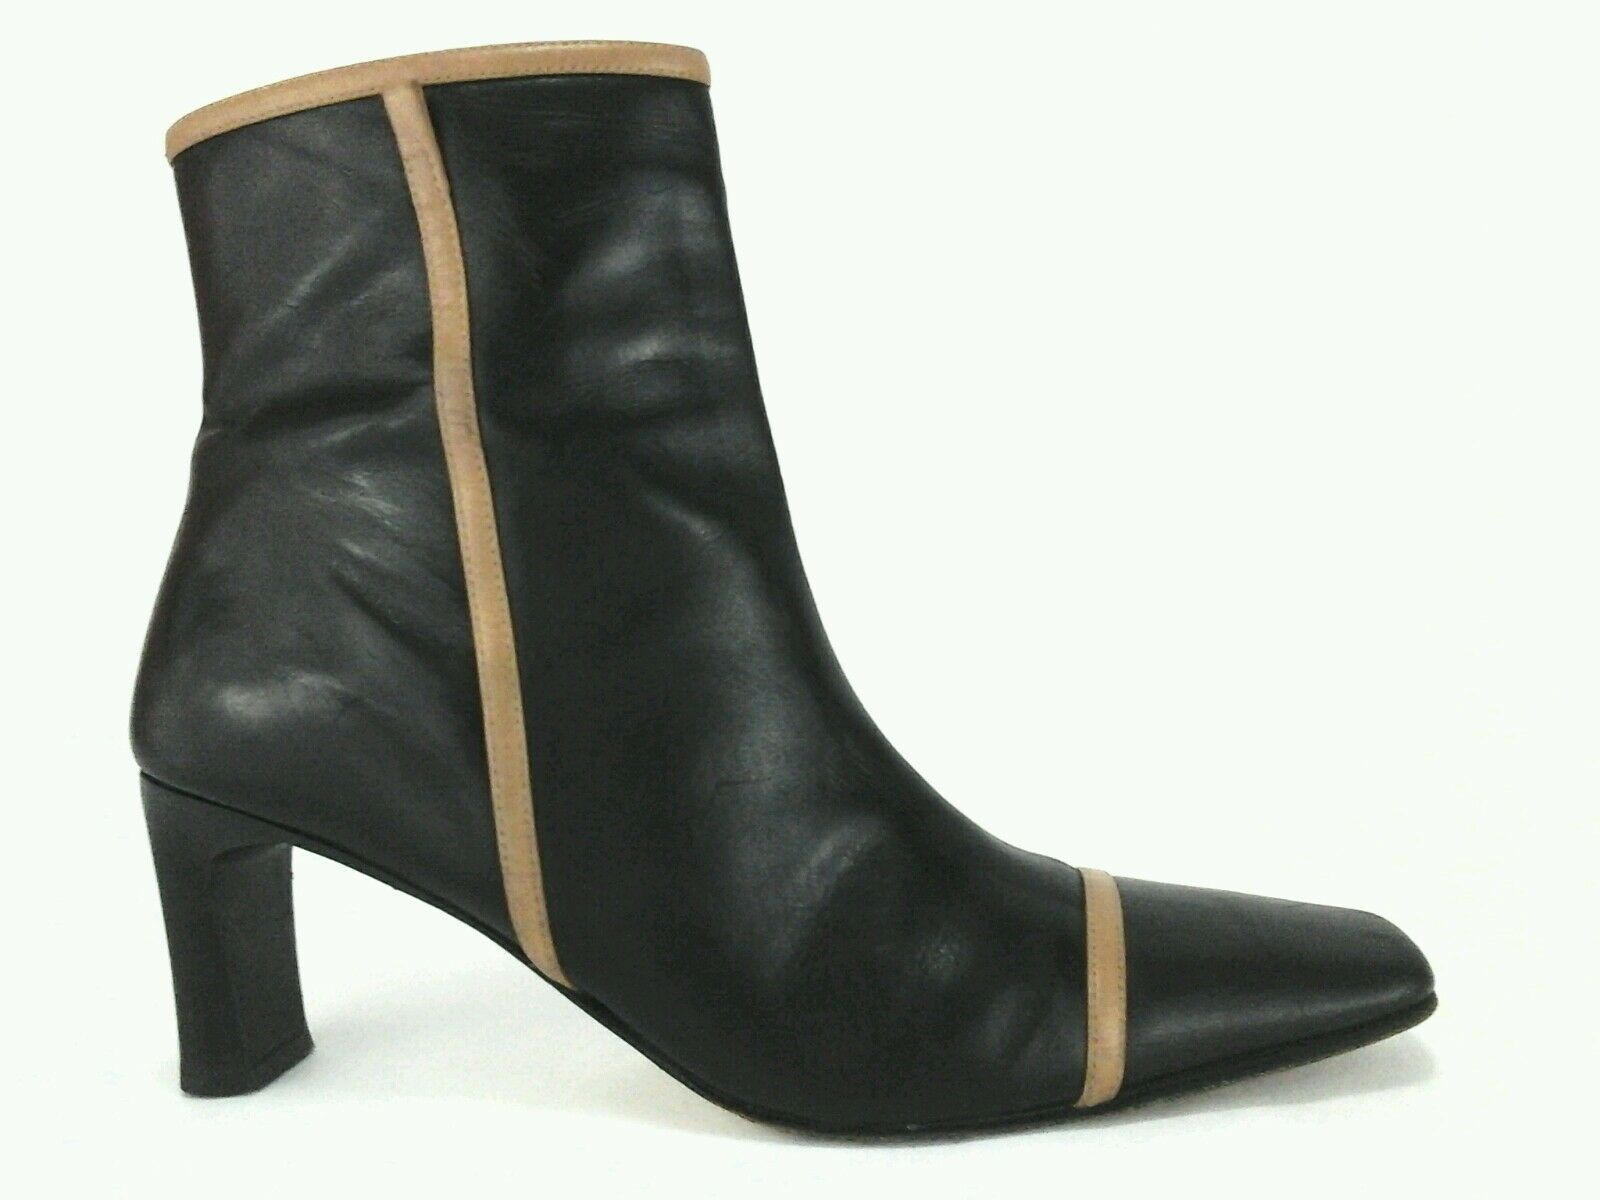 CAVALLINI Ankle Boots Black Brown Leather Heels Made  US 7.5  M EU 38  289